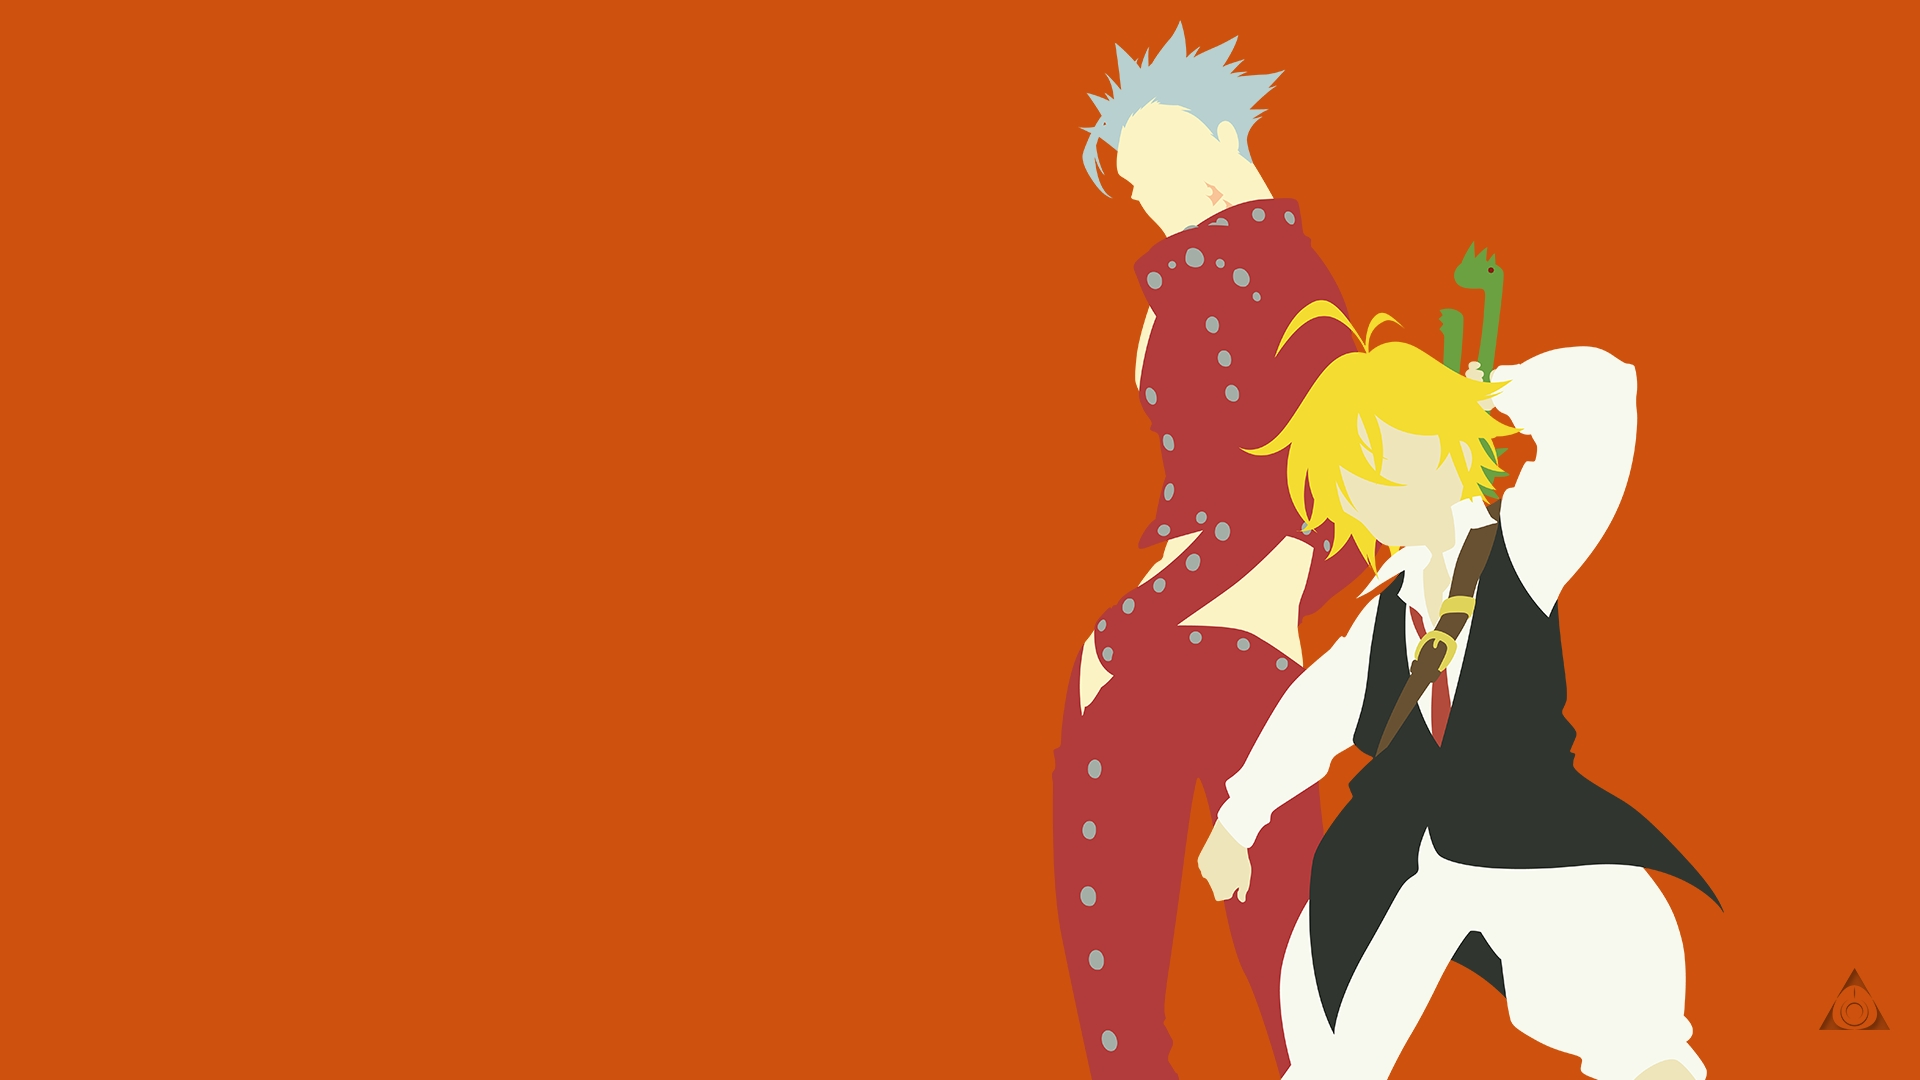 Meliodas And Ban From Seven Deadly Sins Anime Wallpaper Full